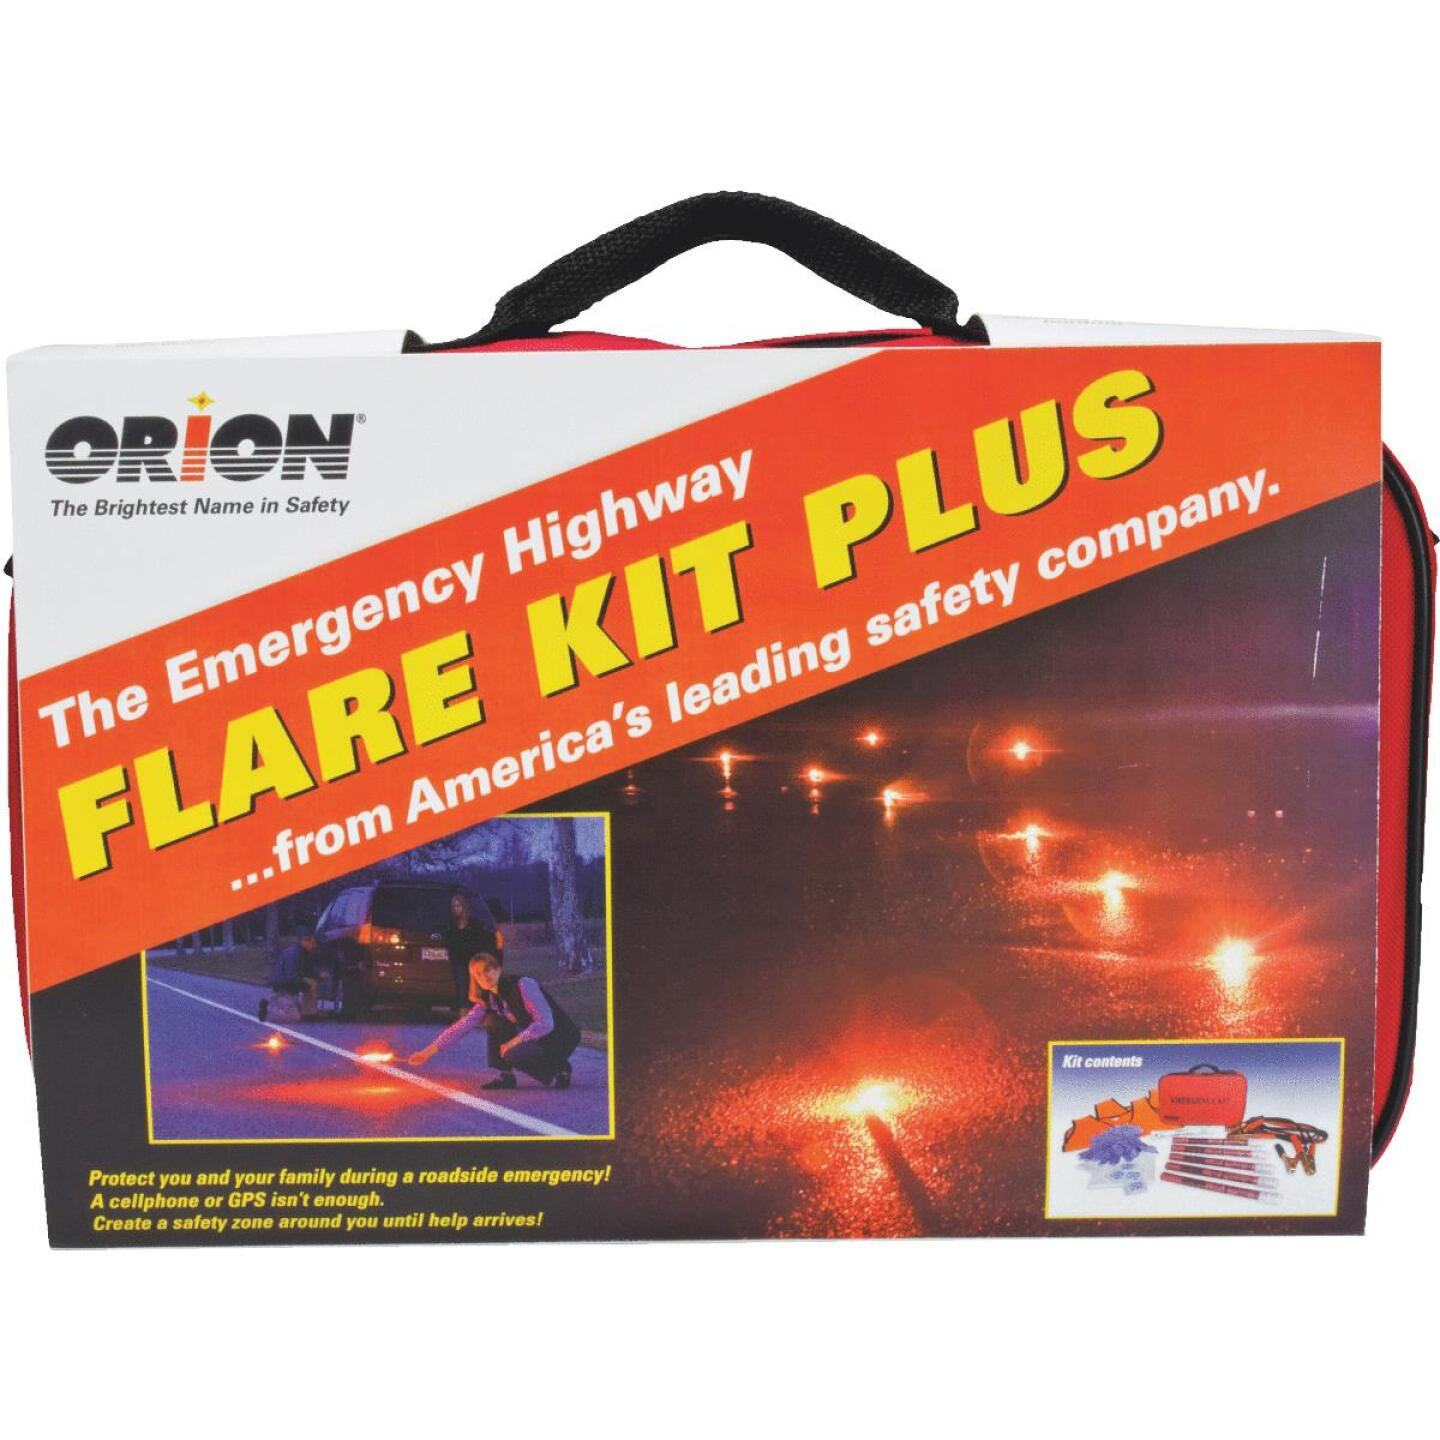 Orion Flare Kit Plus Emergency Road Kit (19-Piece) Image 1